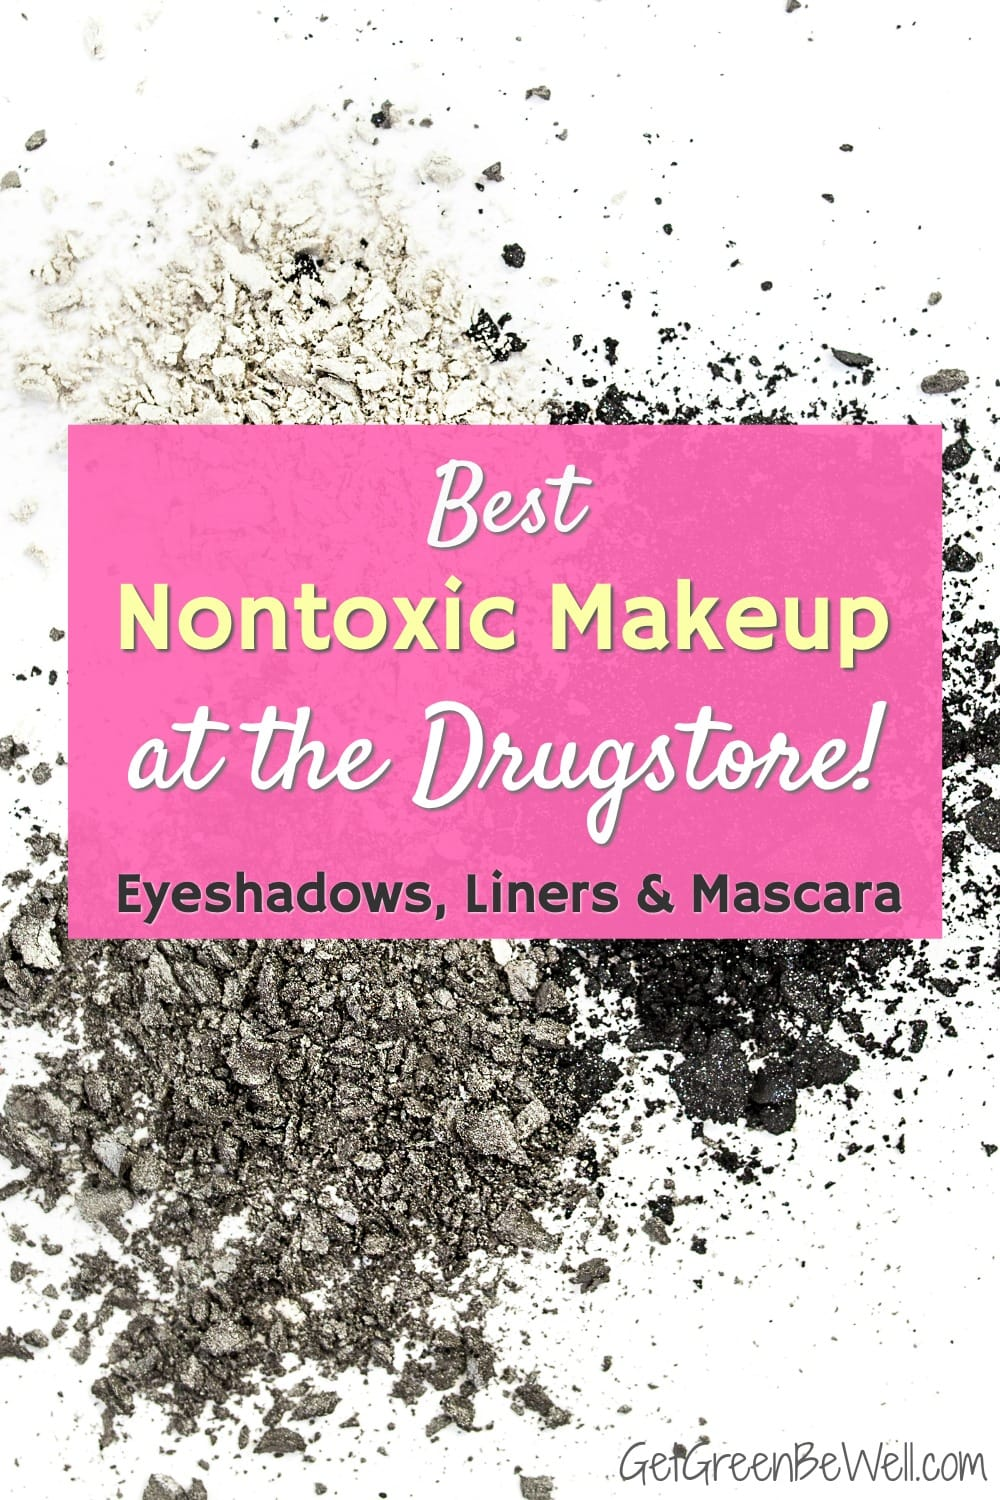 47 Best NonToxic Makeup Brands at the Drugstore 2020 Eye